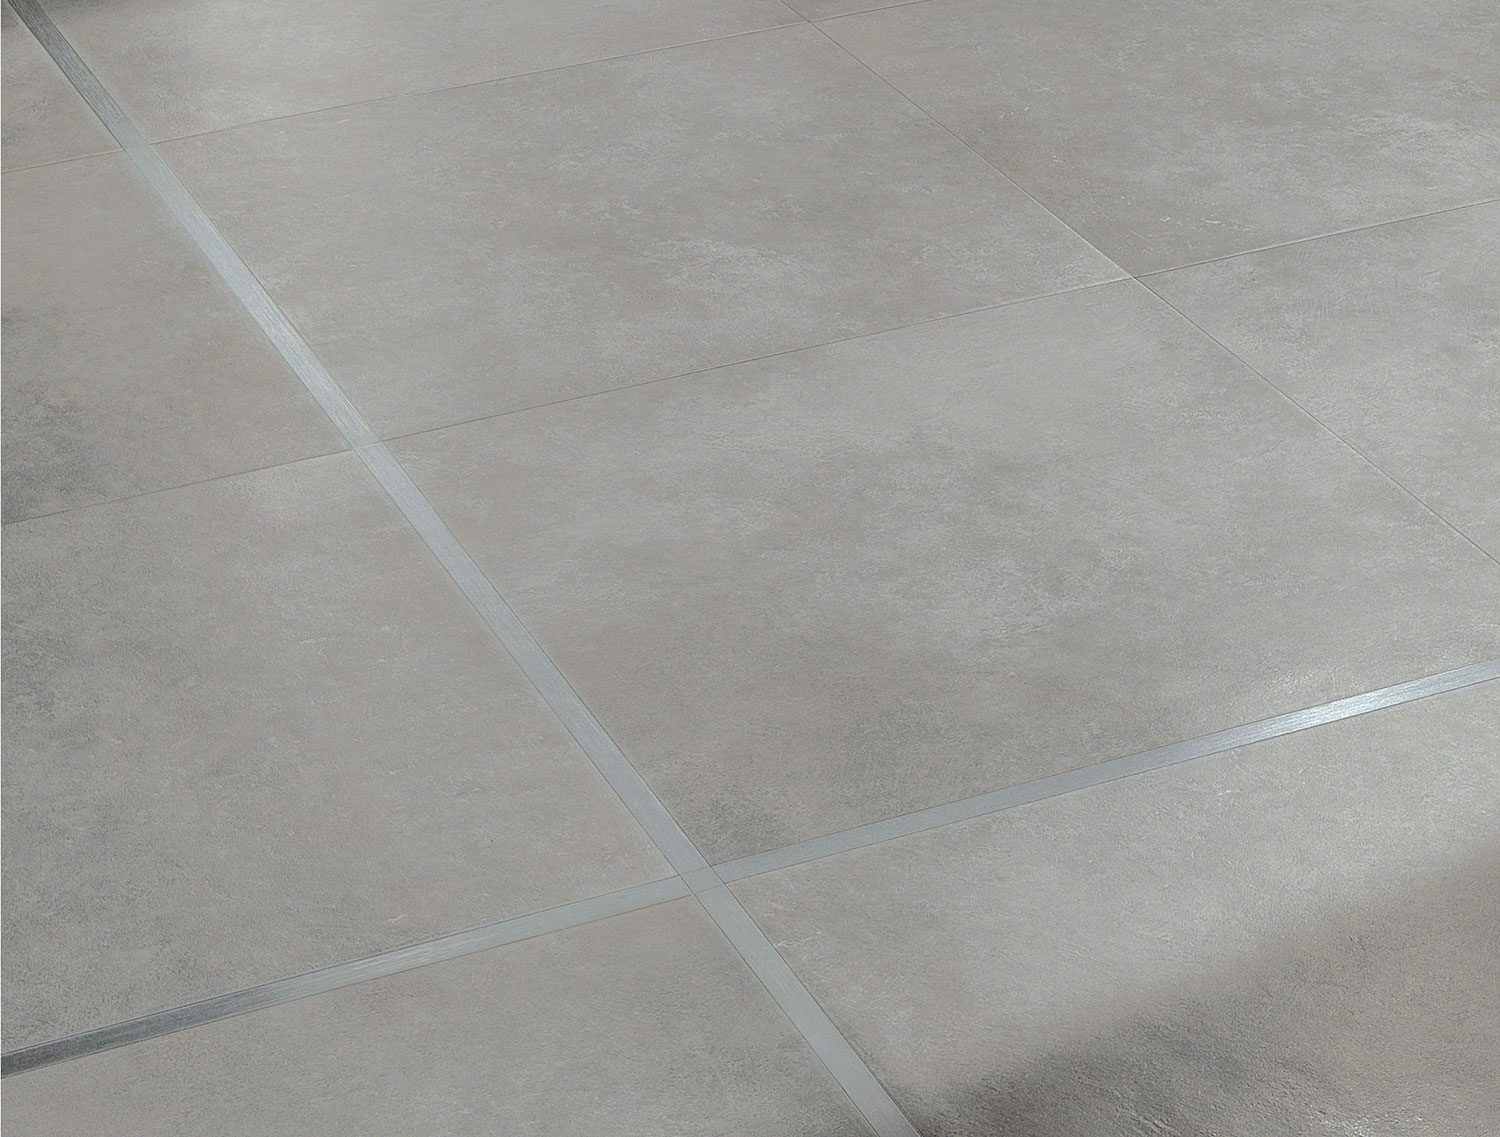 Carrelage Brillant Gris Carrelage Gris Clair Brillant Carreaux Gris Clairs à L Aspect